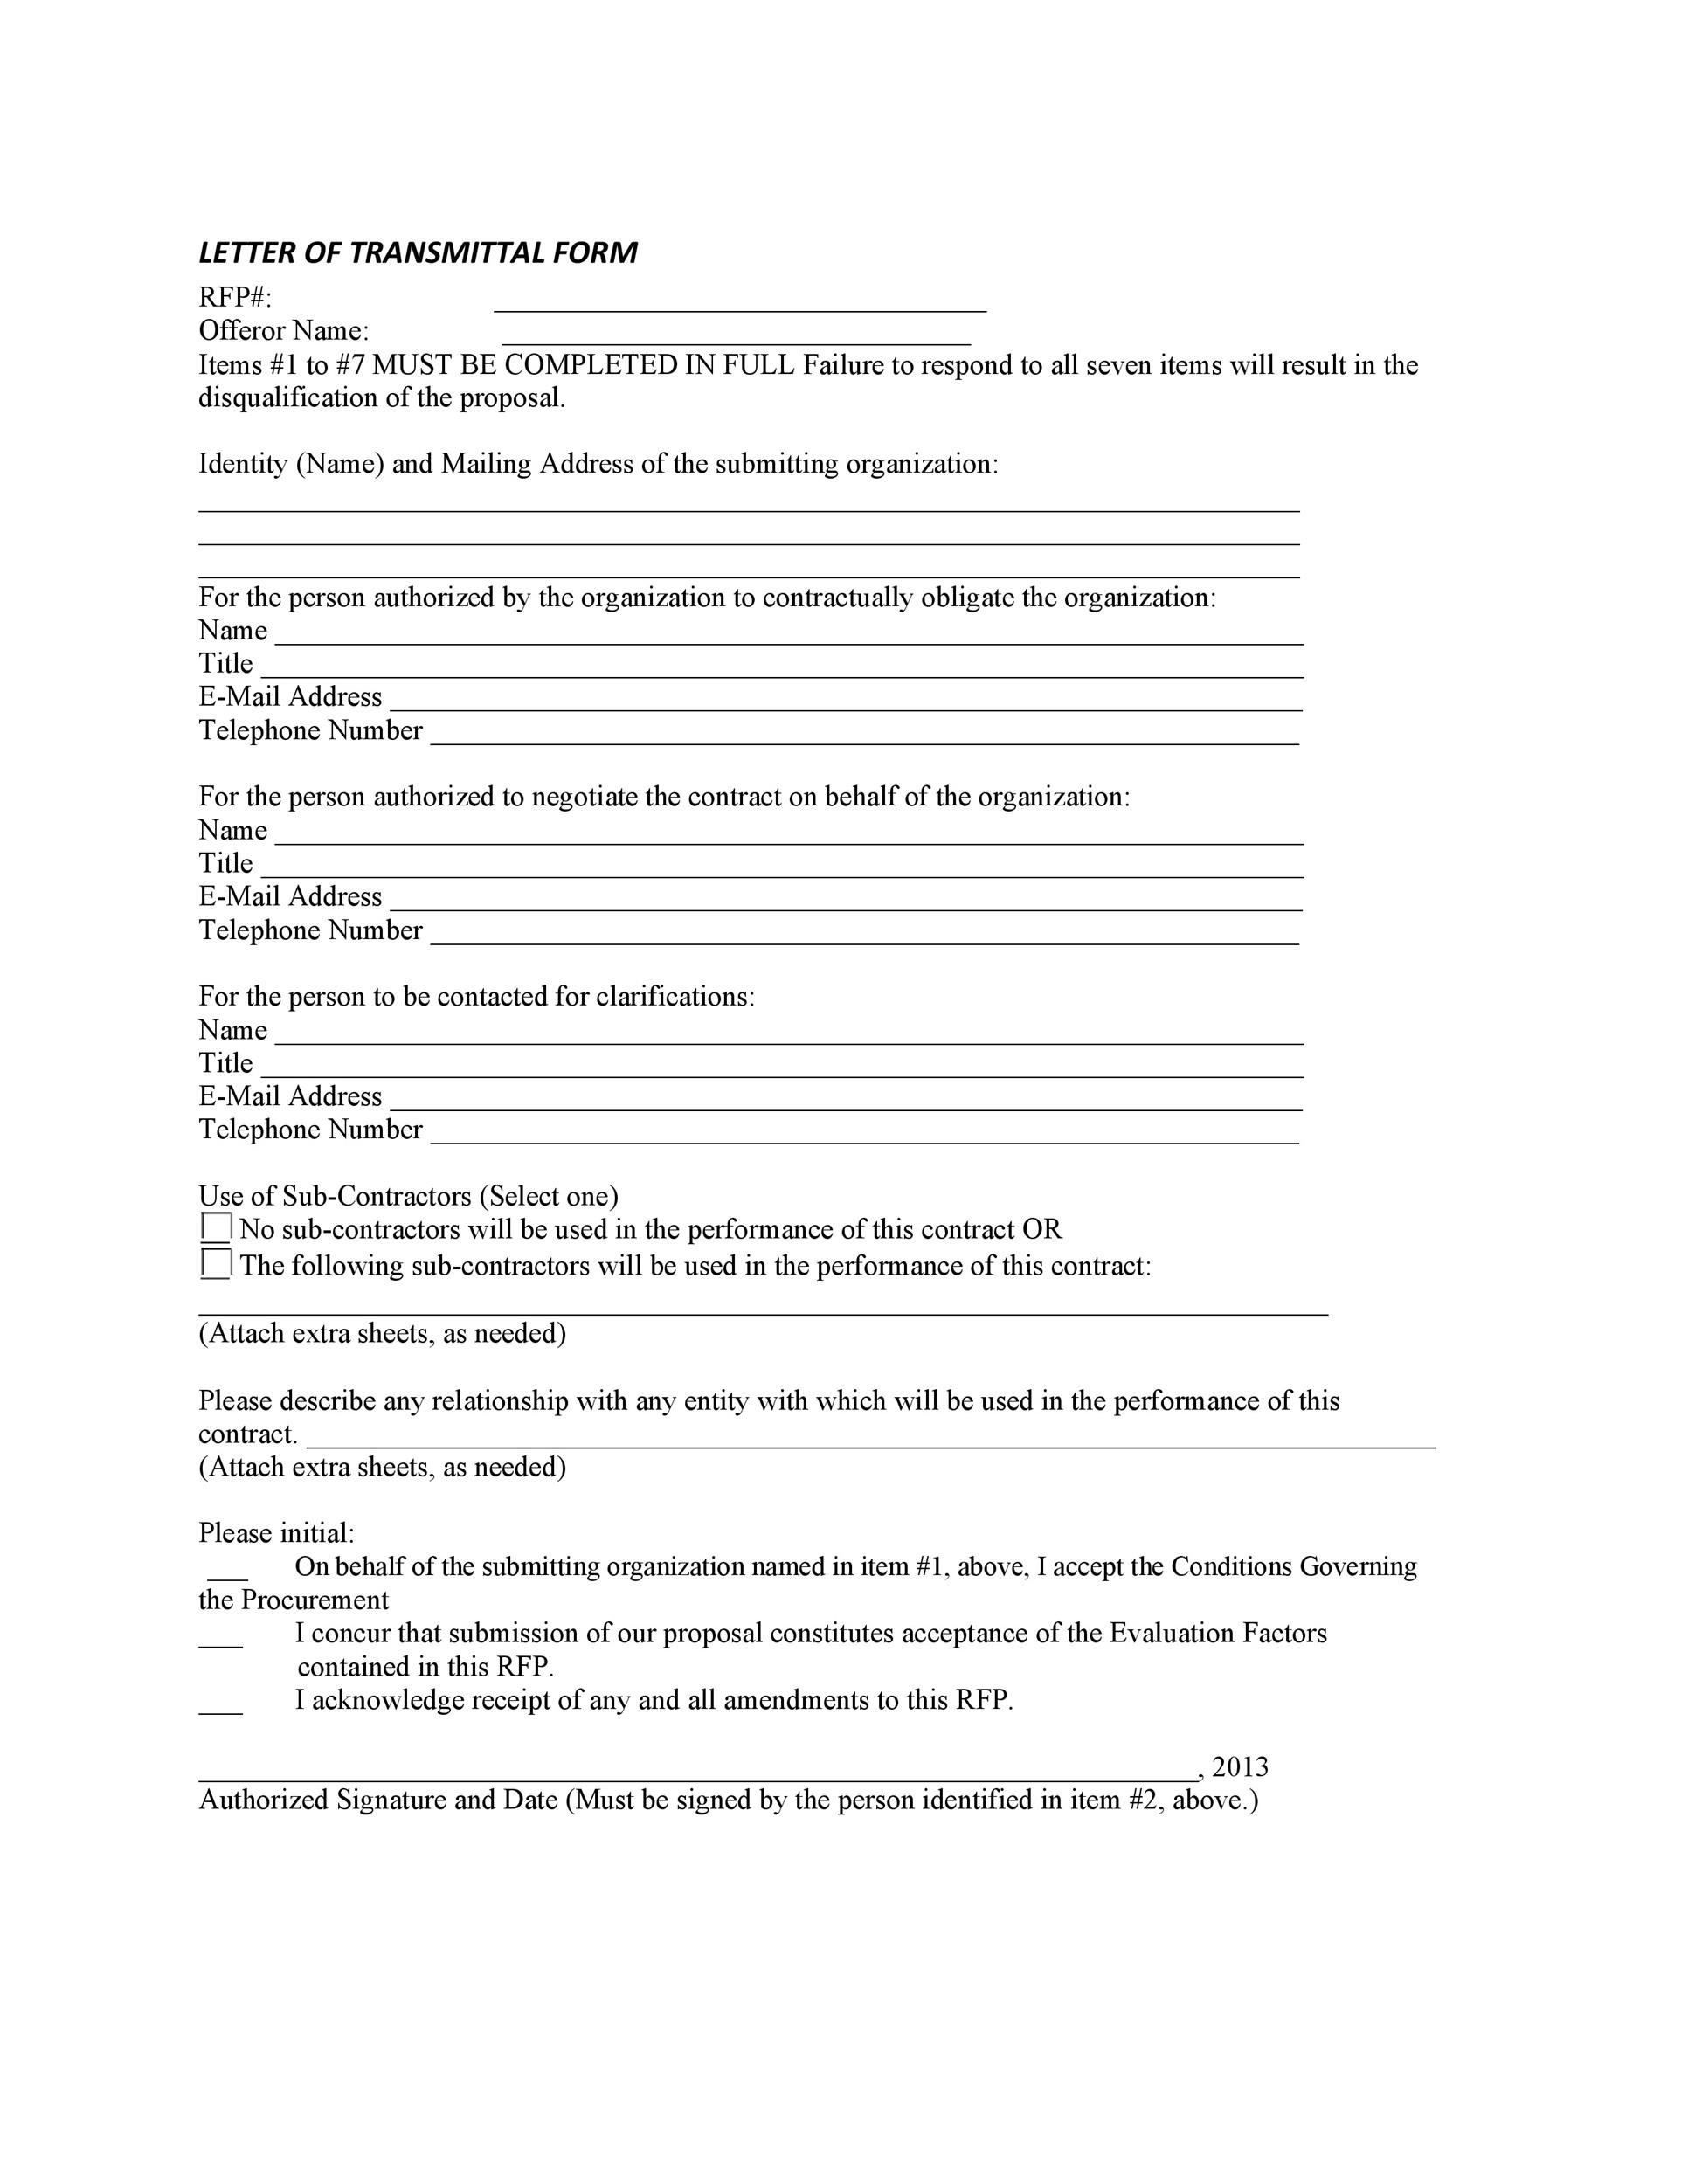 letter of transmittal template 33 Template Lab – Letter of Transmittal for Proposal